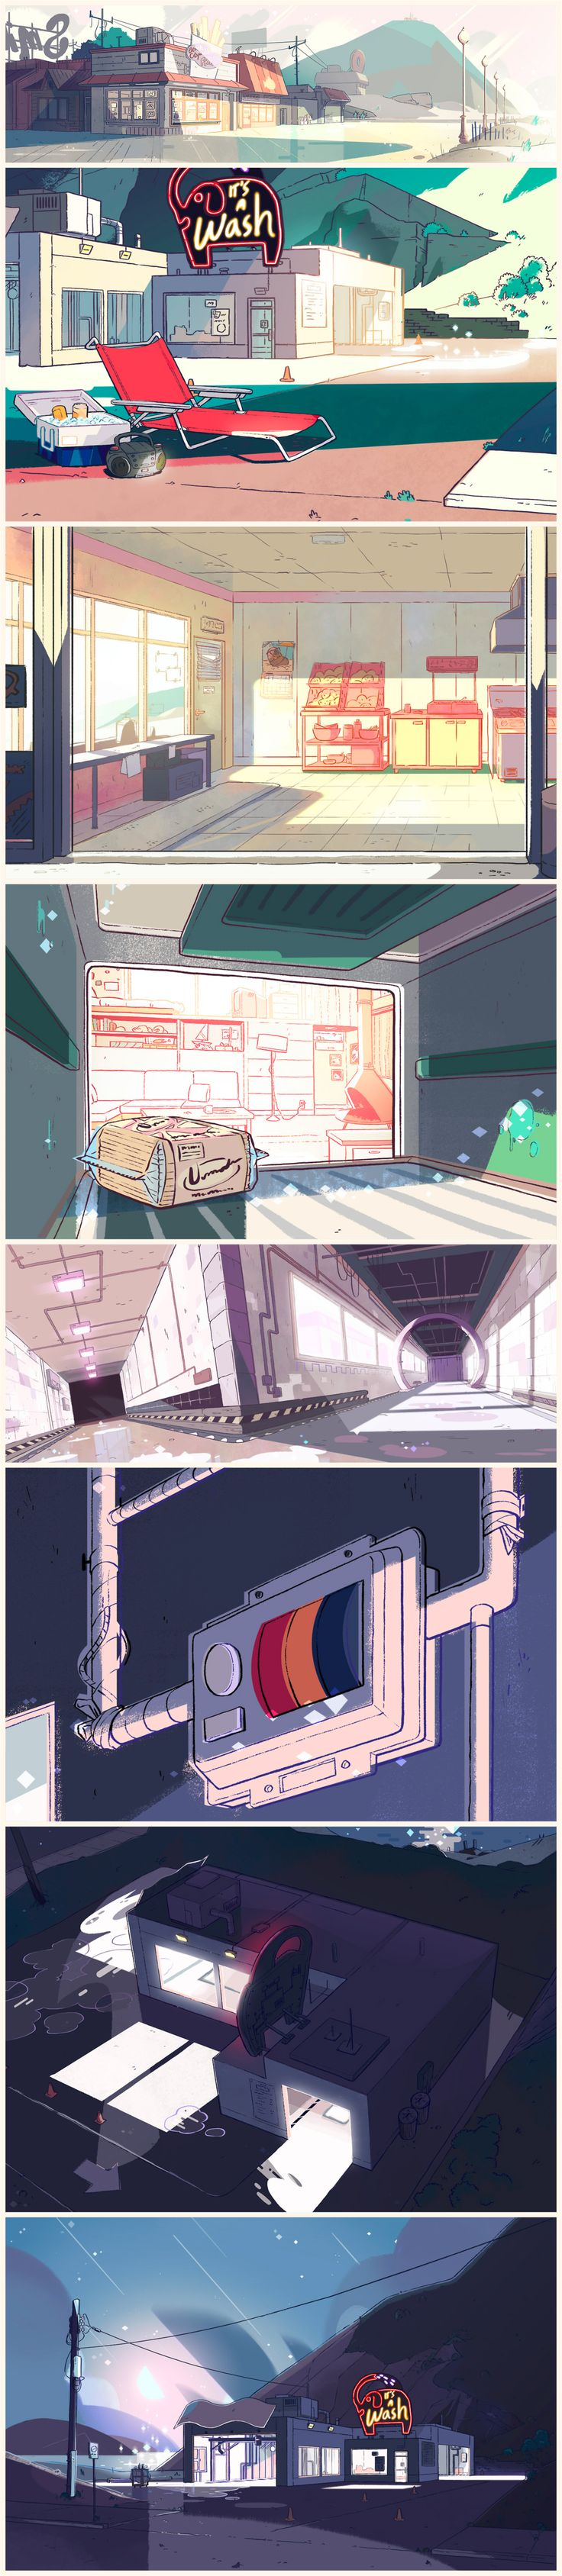 "A selection of Backgrounds from the Steven Universe episode: ""Cat Fingers"""